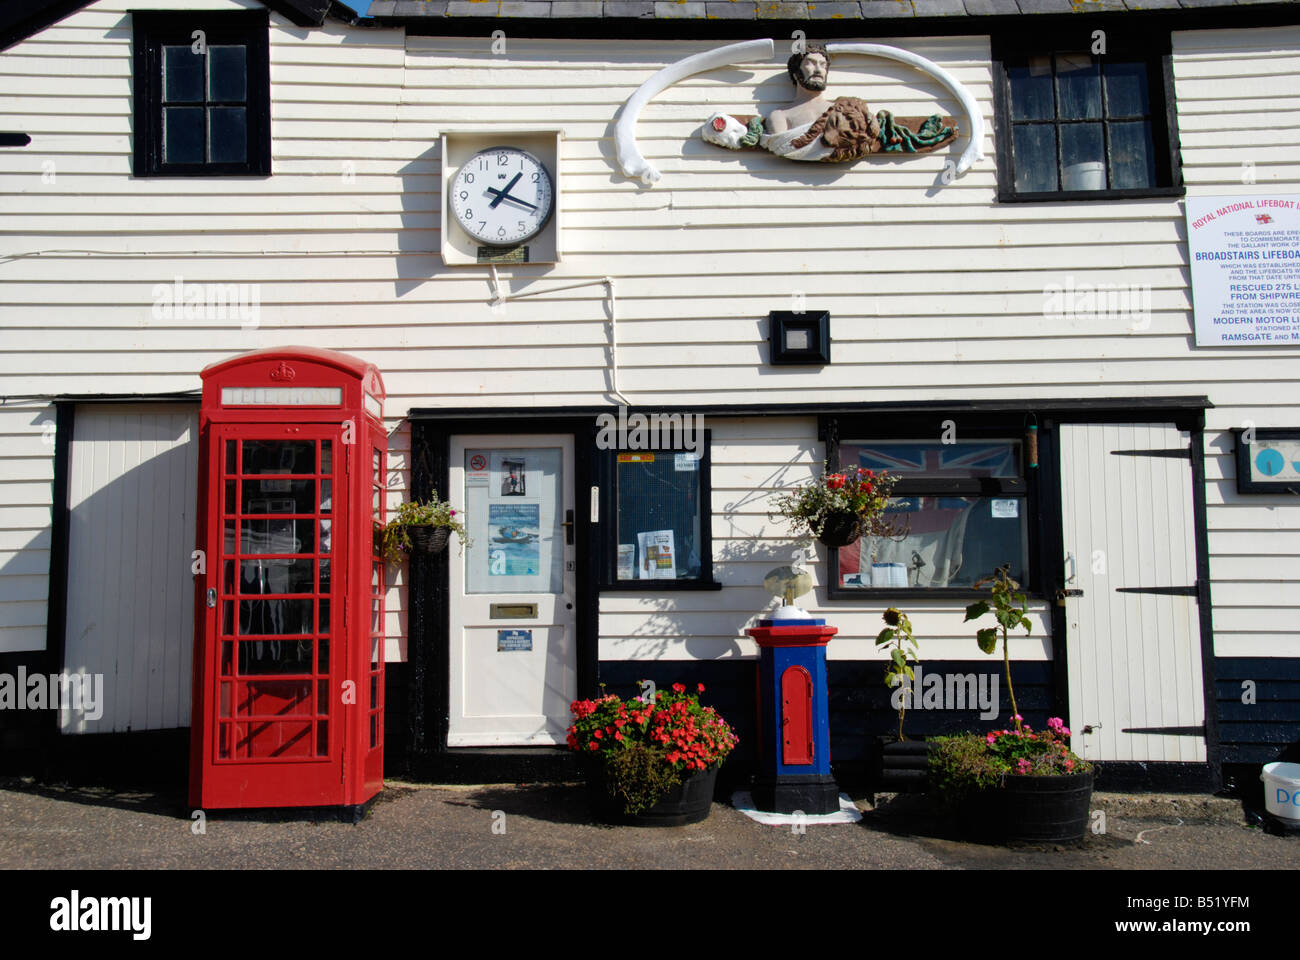 The Old Lifeboat House Broadstairs Kent England - Stock Image